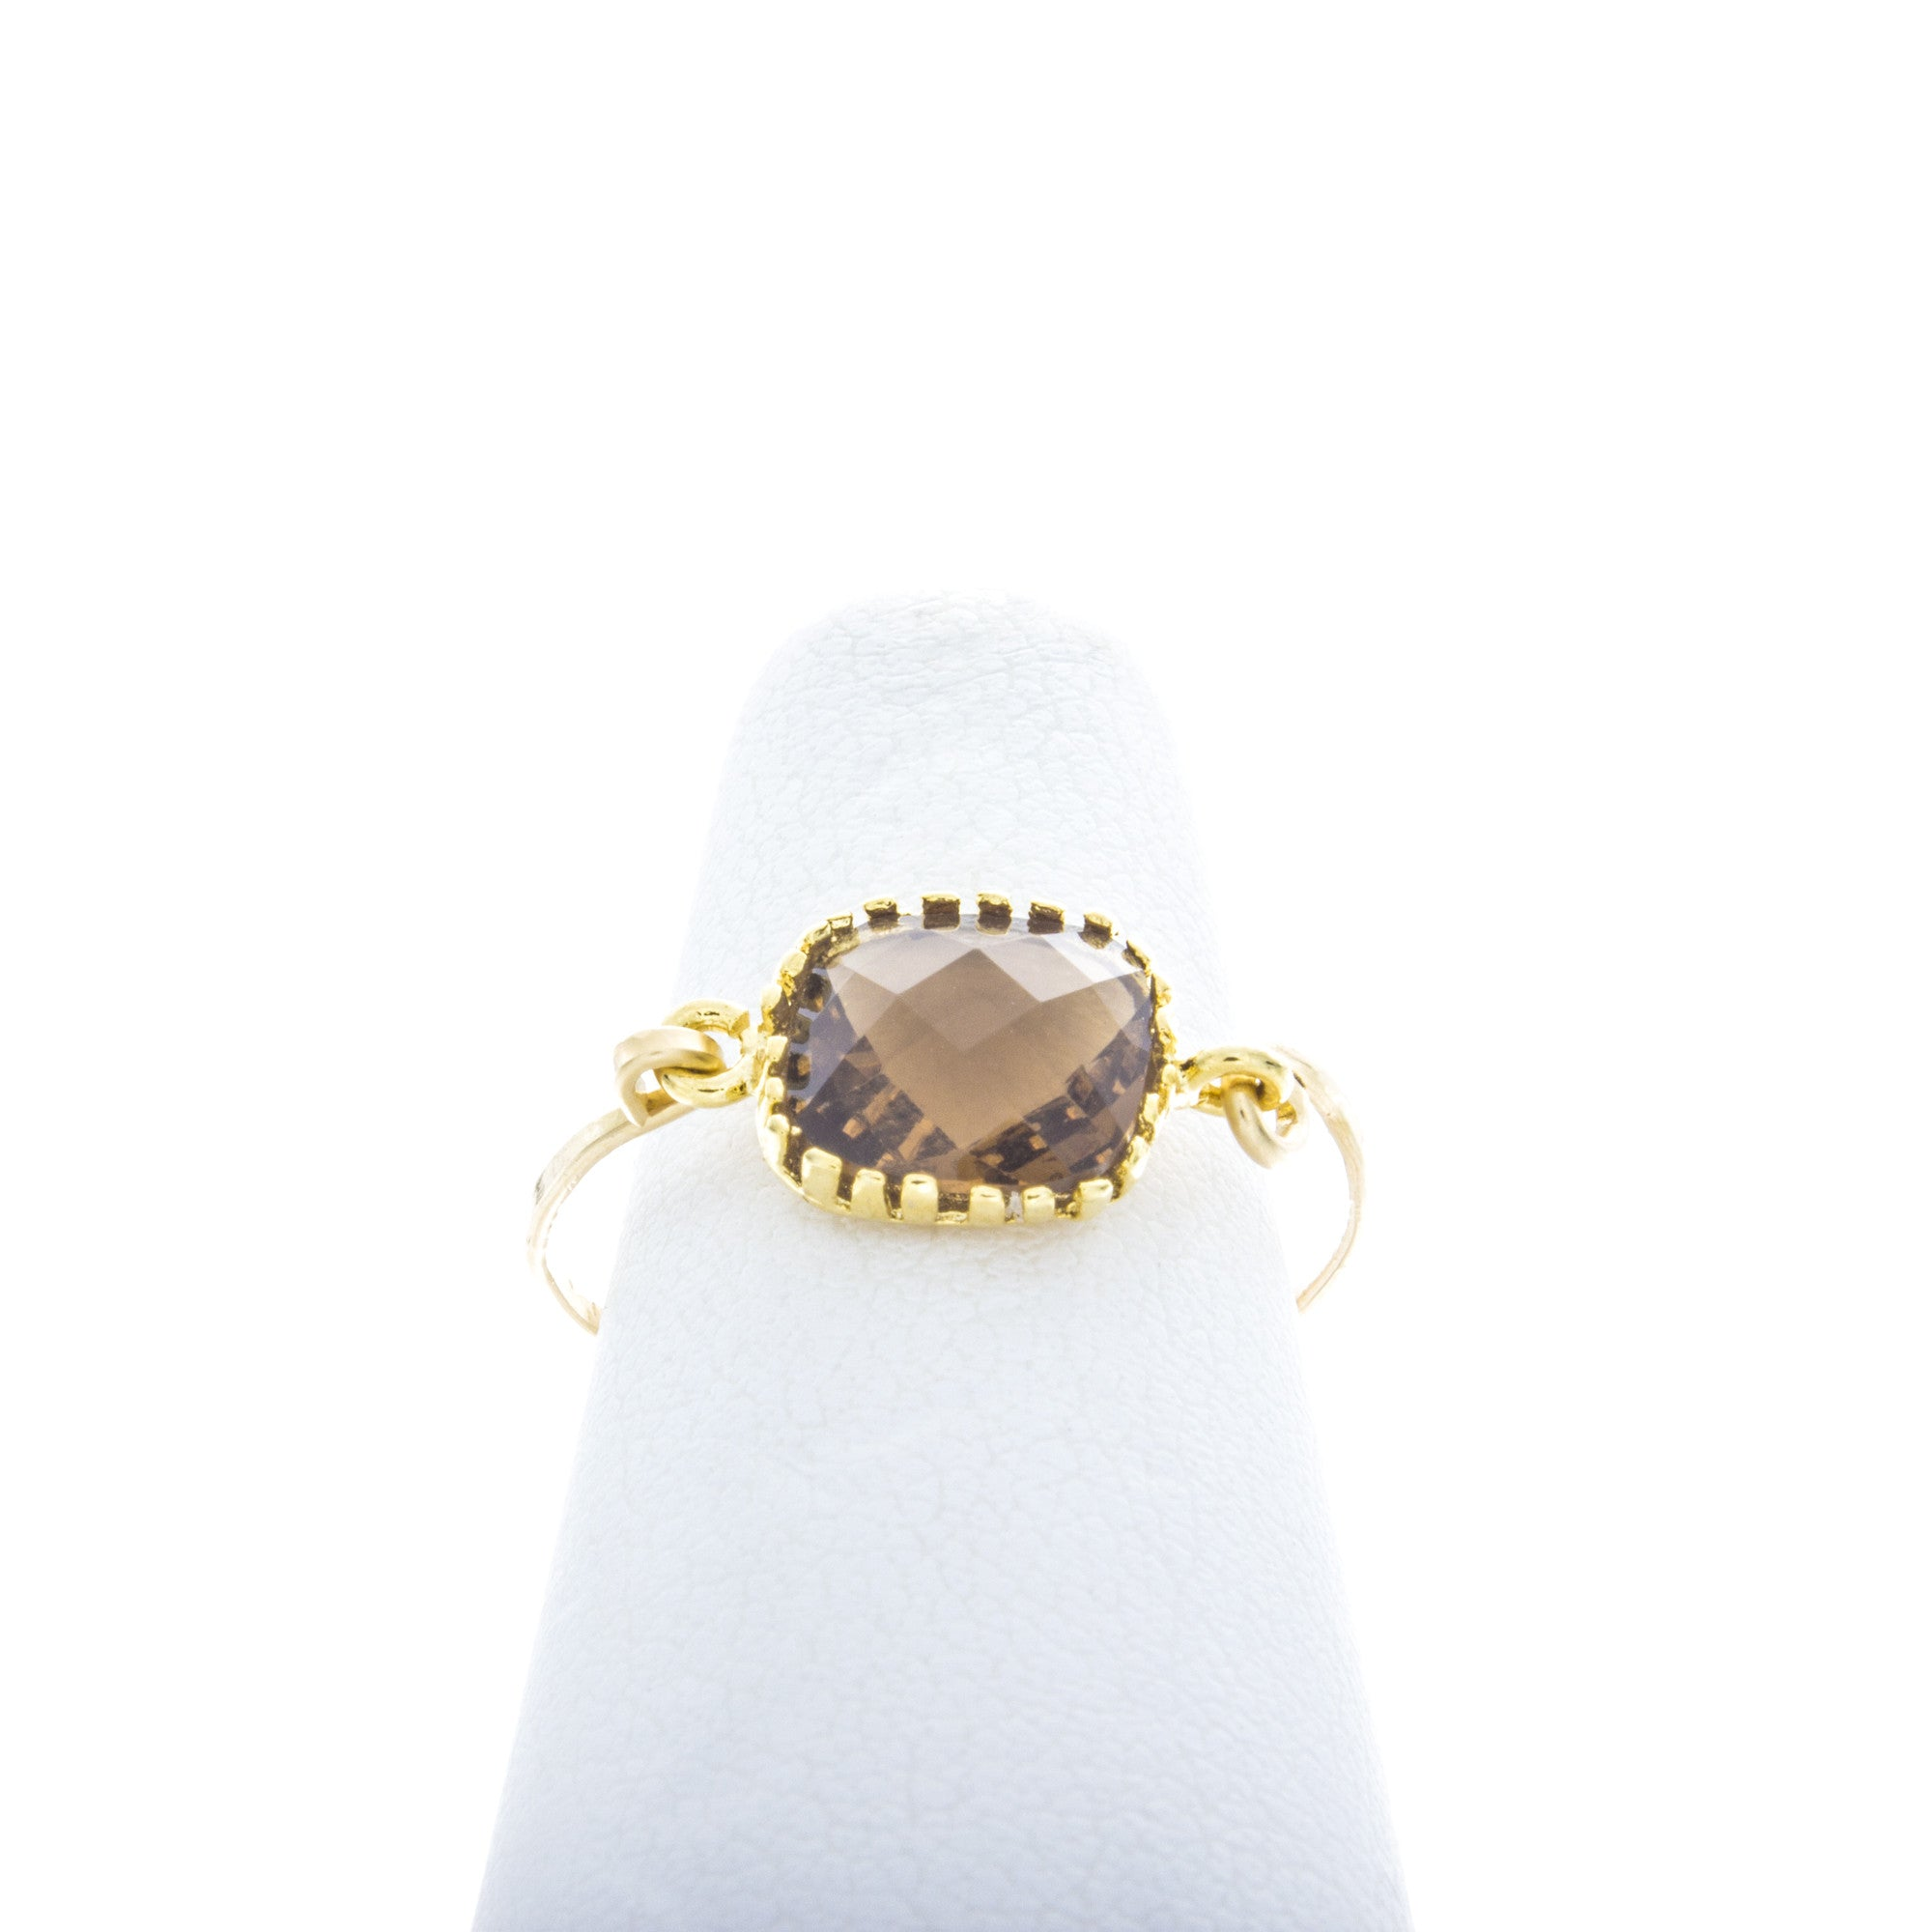 Square prong gemstone rings